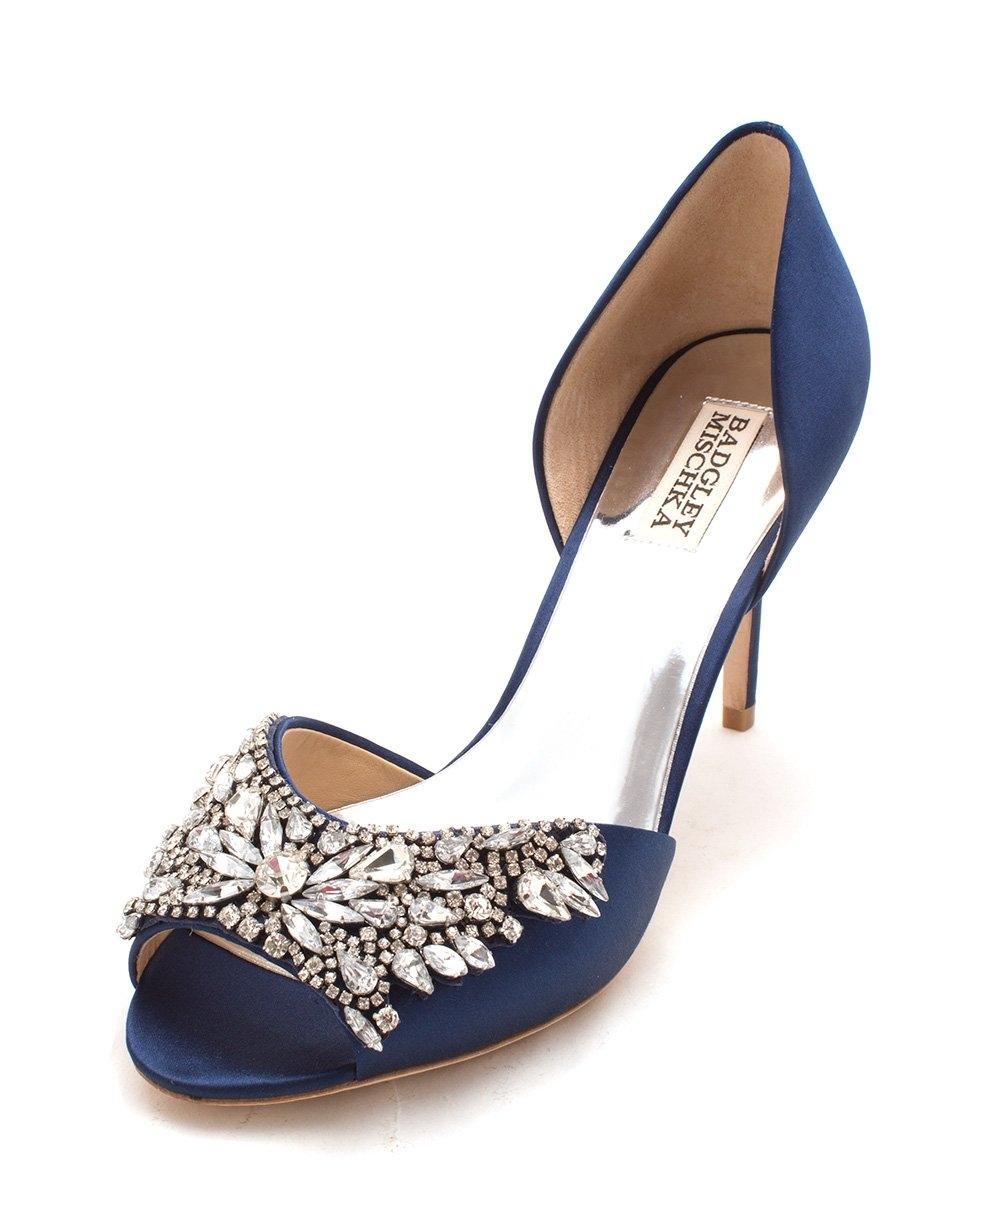 discount store Hermès Embellished d'Orsay Pumps buy cheap perfect cheapest price for sale manchester great sale b91hpg3ou